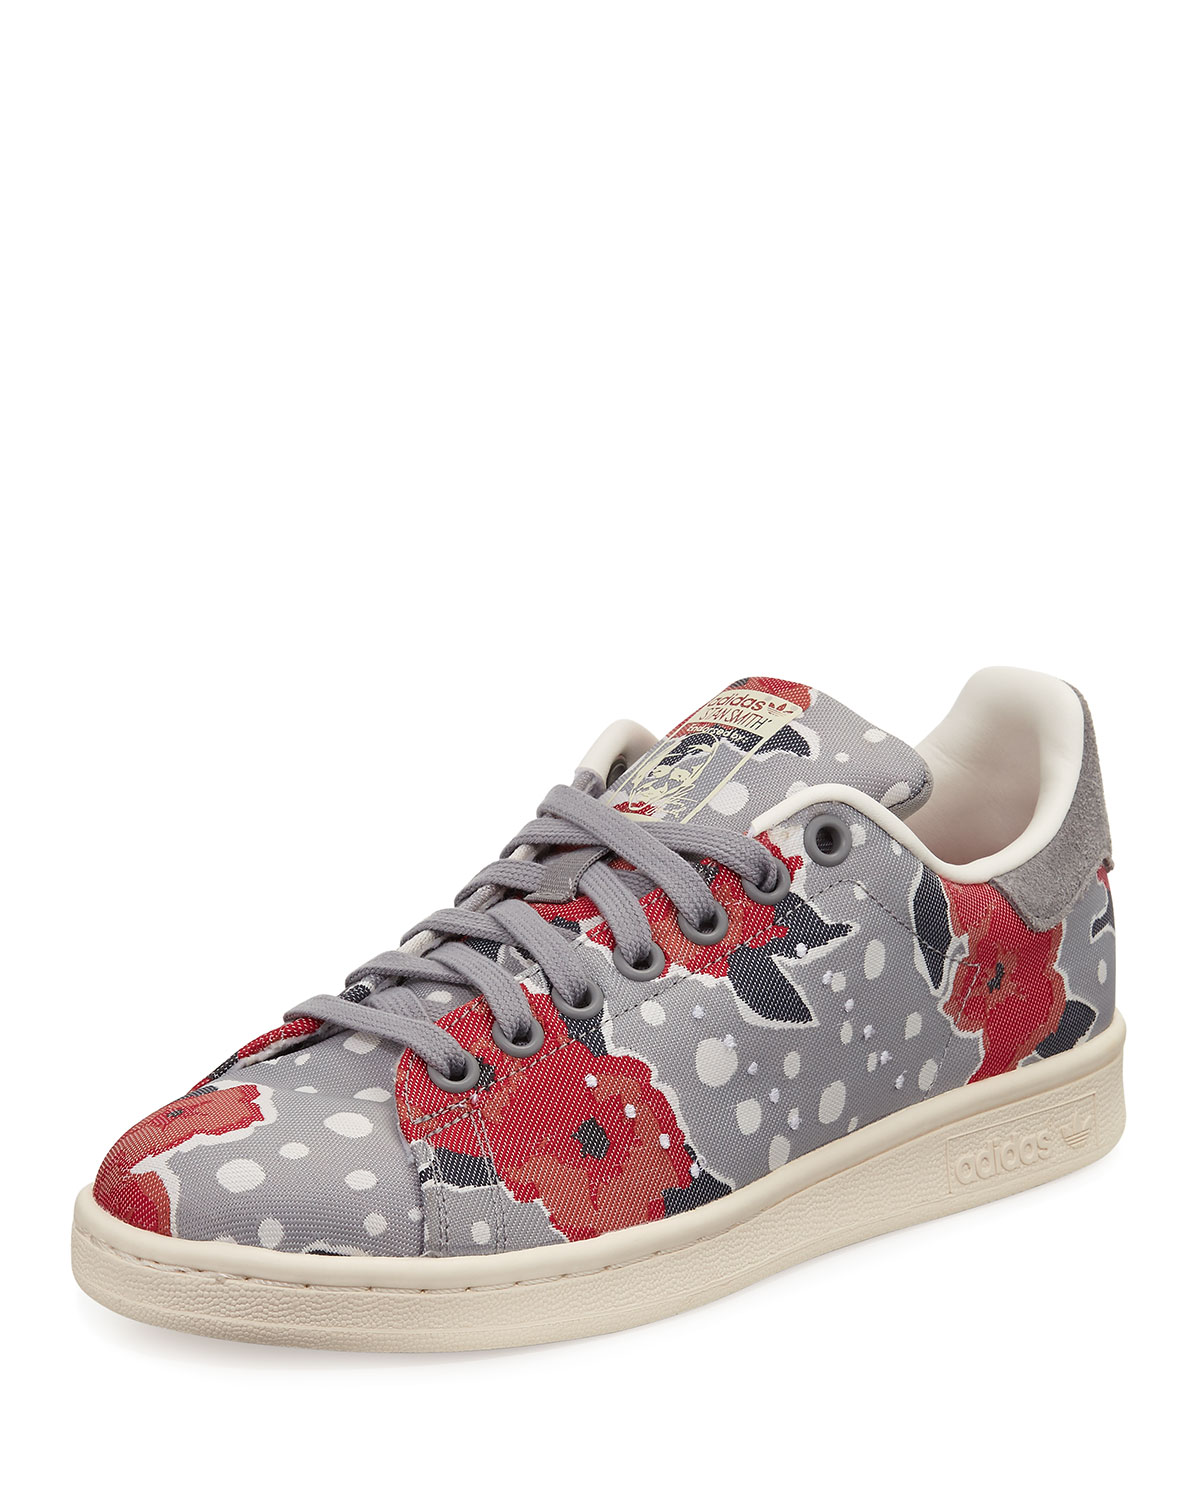 low priced 4a15c 7008f Adidas Stan Smith Floral Sneakers, Solid Gray Unity Pink